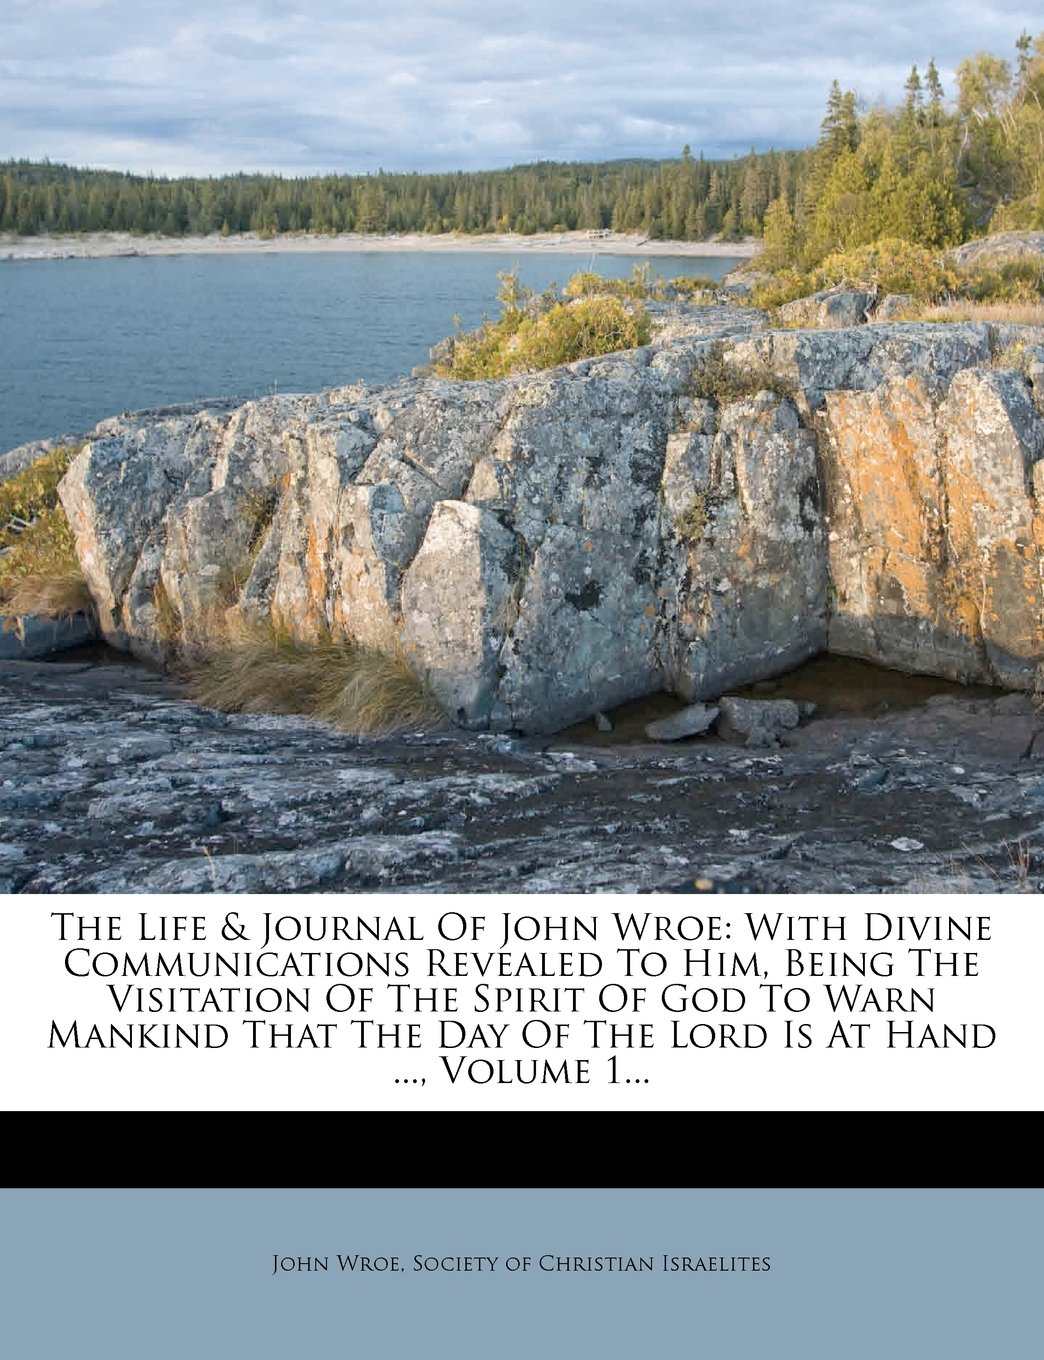 Download The Life & Journal Of John Wroe: With Divine Communications Revealed To Him, Being The Visitation Of The Spirit Of God To Warn Mankind That The Day Of The Lord Is At Hand ..., Volume 1... PDF